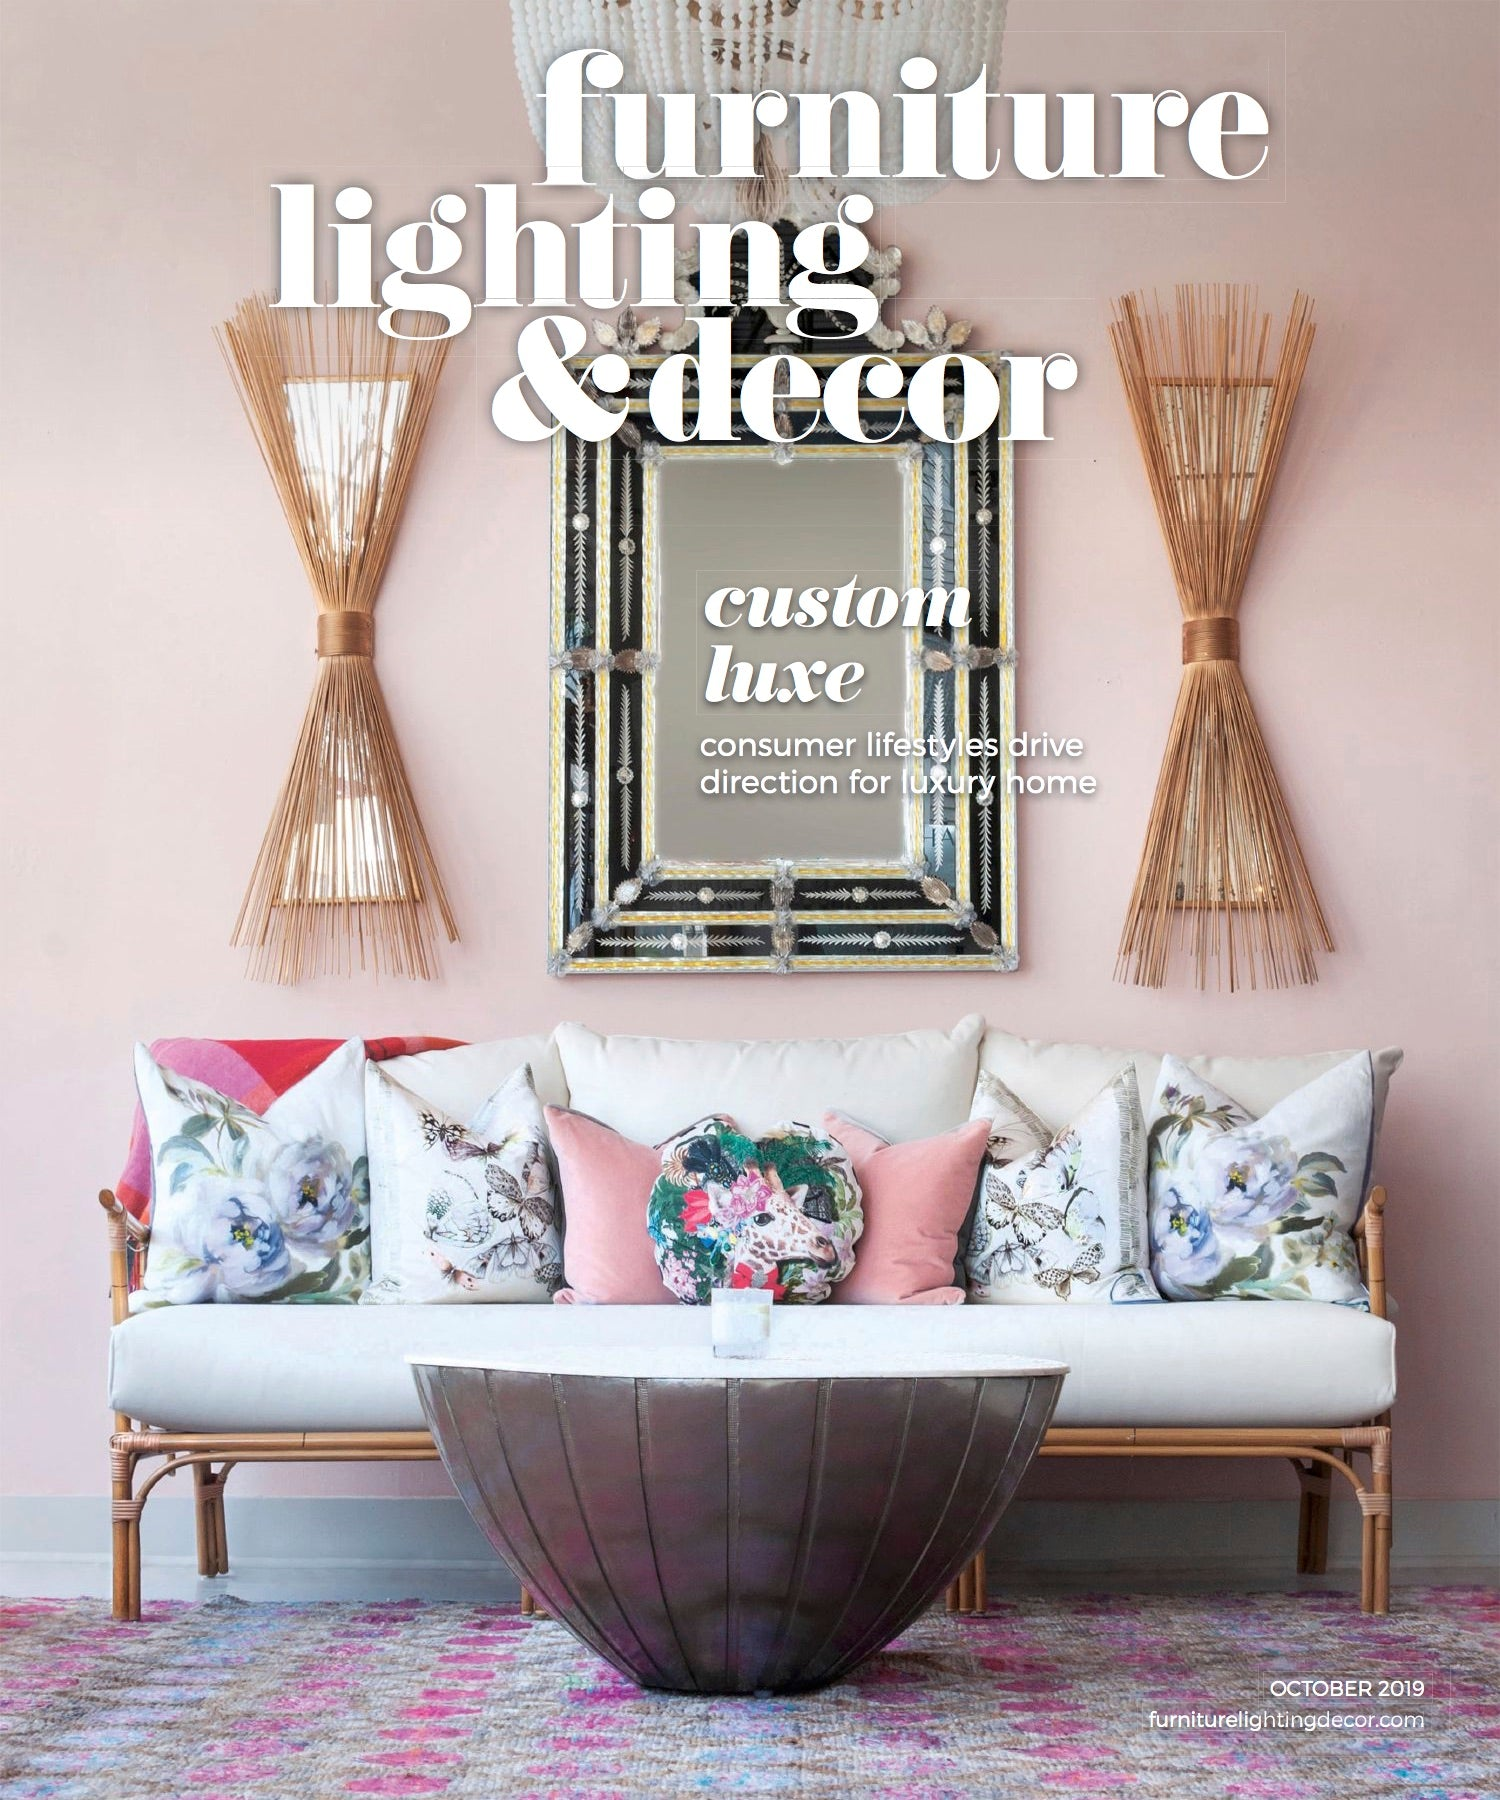 Furniture Lighting & Decor - October 2019